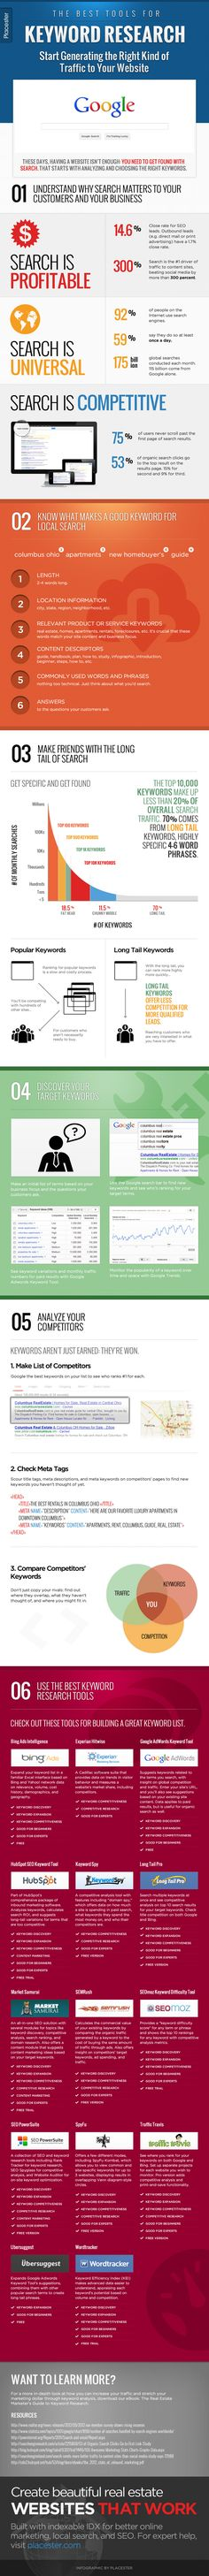 5 Incredible Keyword Research Analysis Tips #Infographics